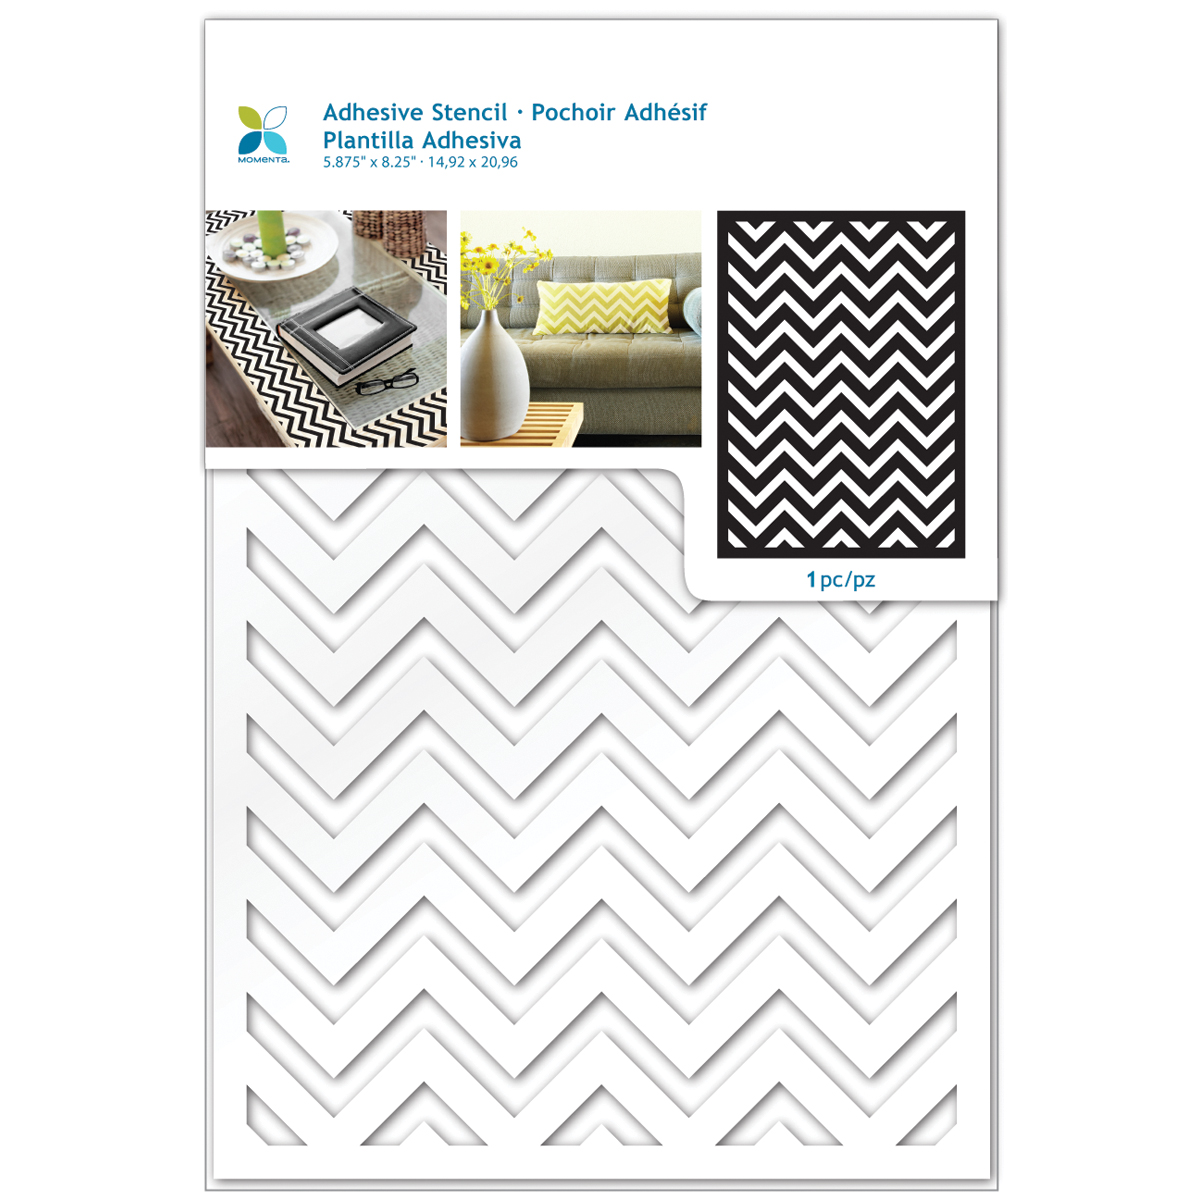 adhesive stencil paper Makes a strong non-adhesive stencil which can be if you've applied re-positionable adhesive spray to the back,then place on saran wrap or wax paper to prevent.